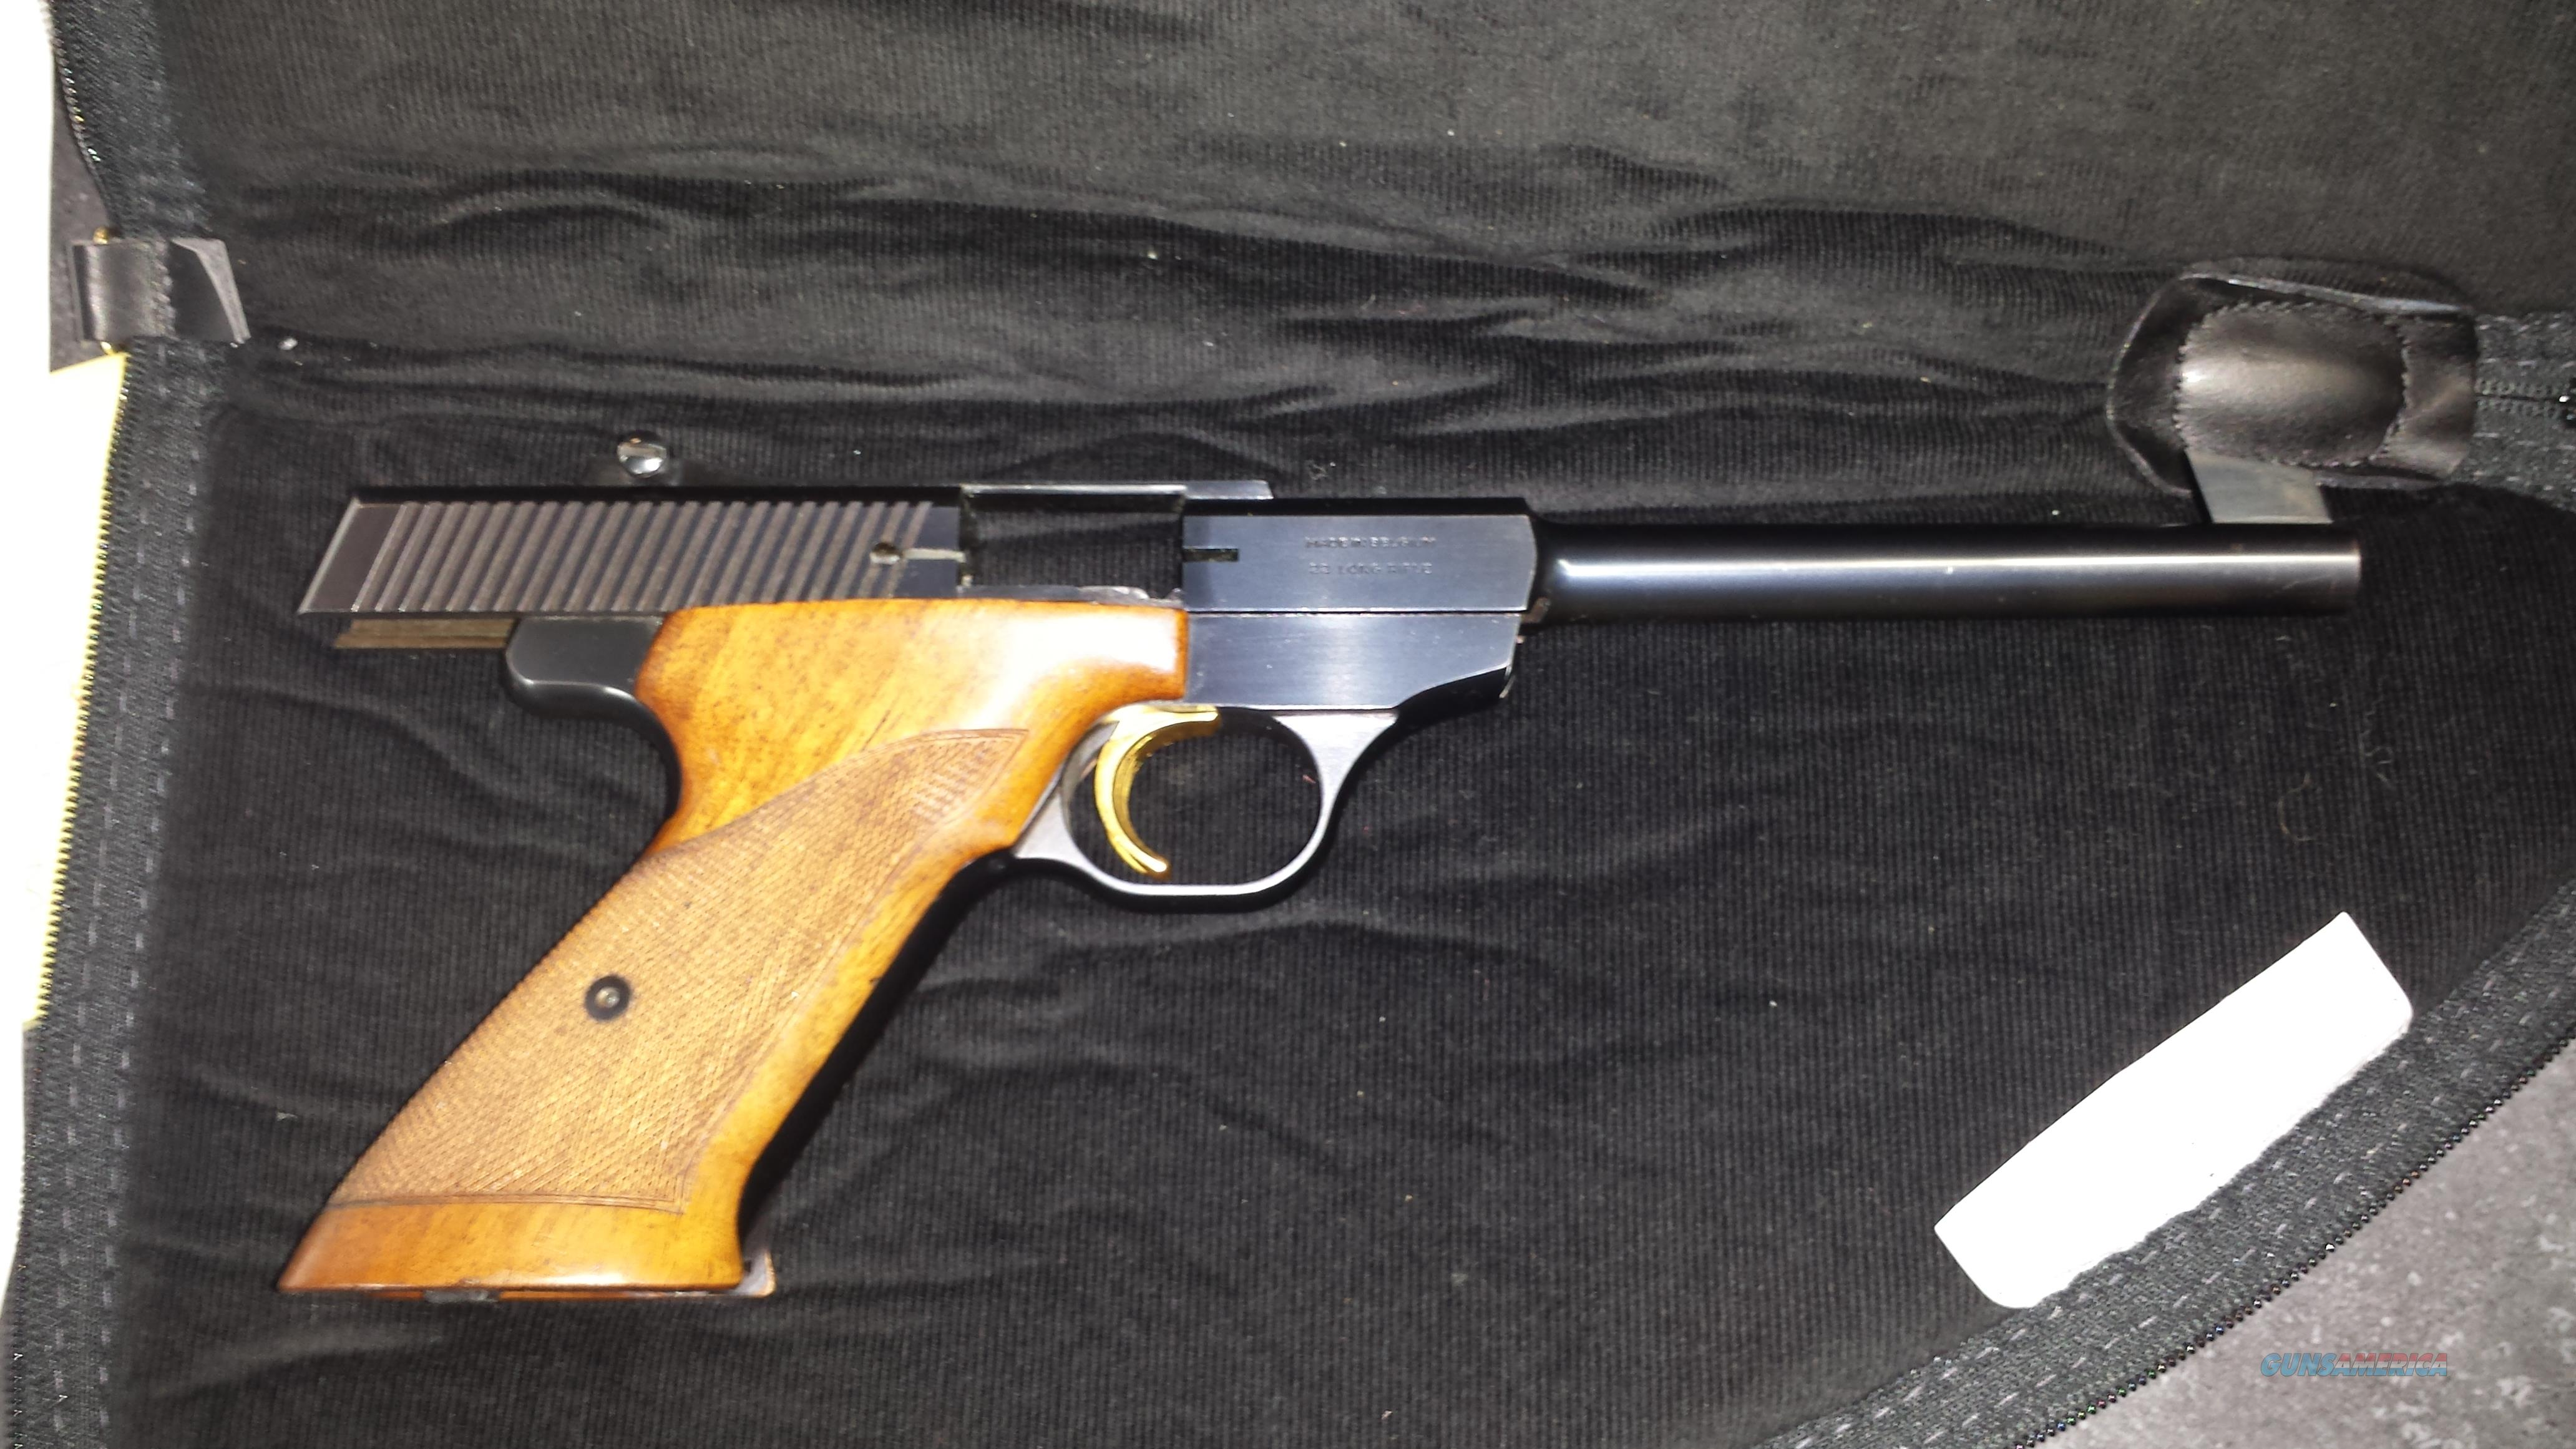 Browning Challenger (Mark I) in near mint condition.  Comes with Browning Soft Case and Manual*  Guns > Pistols > Browning Pistols > Other Autos